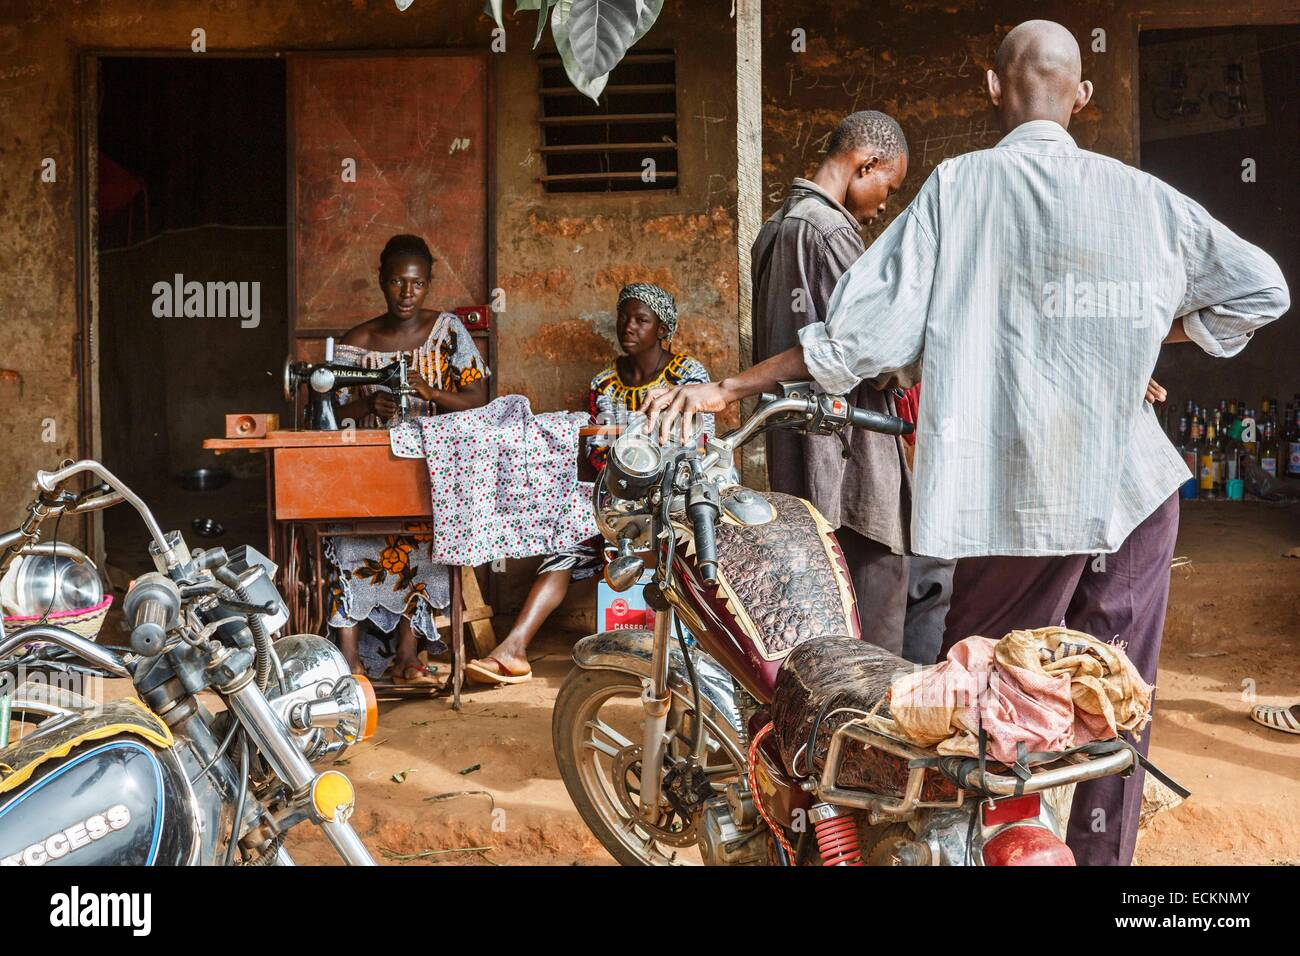 Burkina Faso, Bobo Dioulasso, Toussiana, stage of life of a traditional African market, motorcycles parked outside - Stock Image